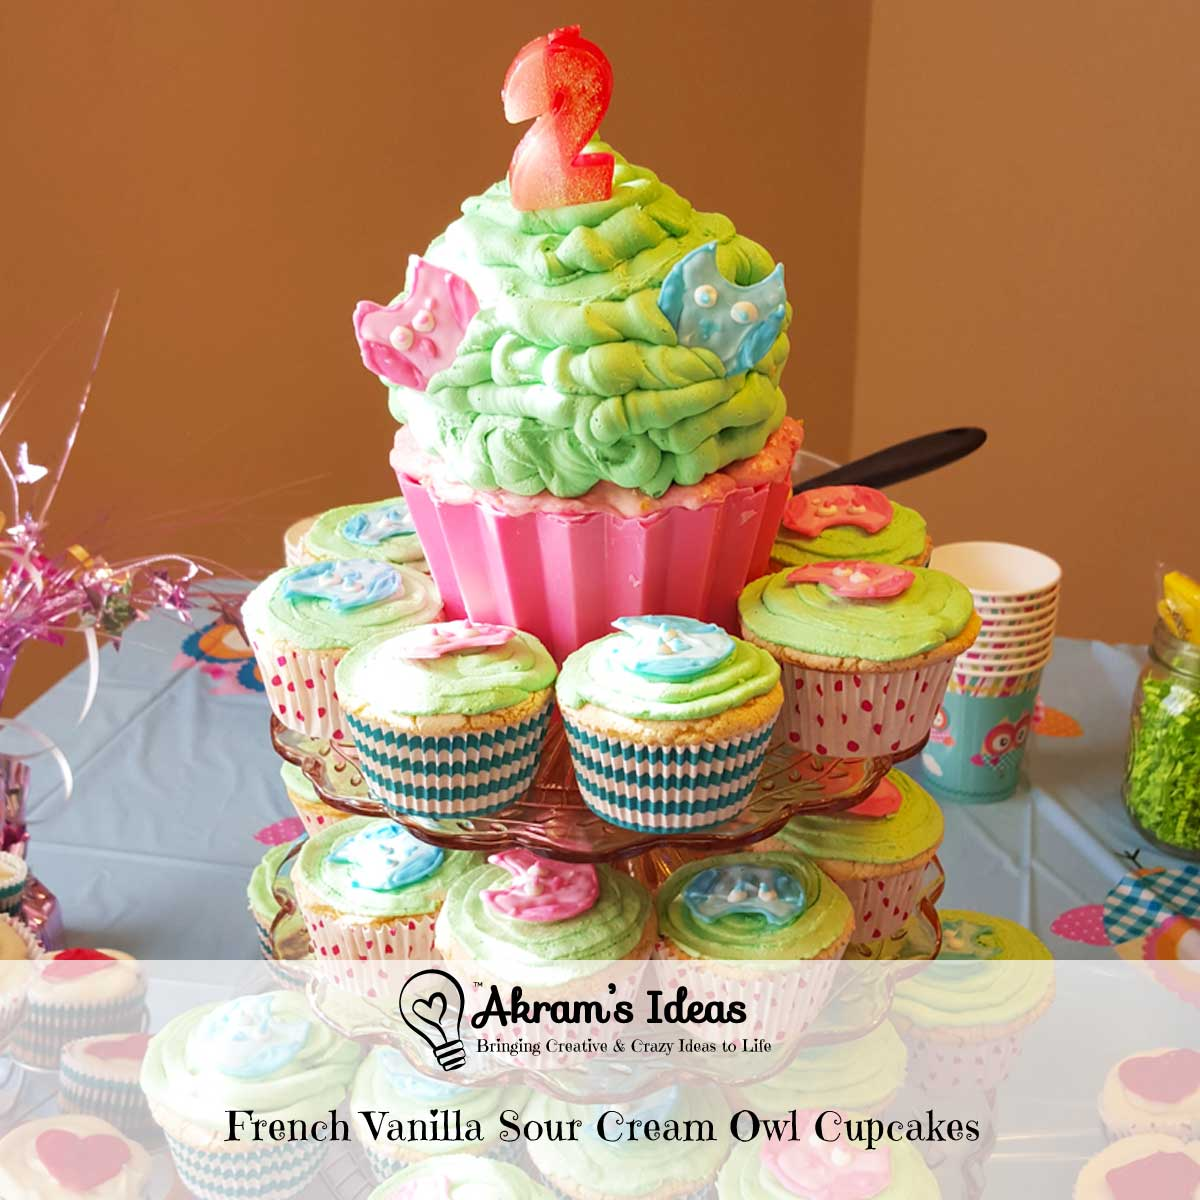 Akram's Ideas: French Vanilla Sour Cream Owl Cupcakes